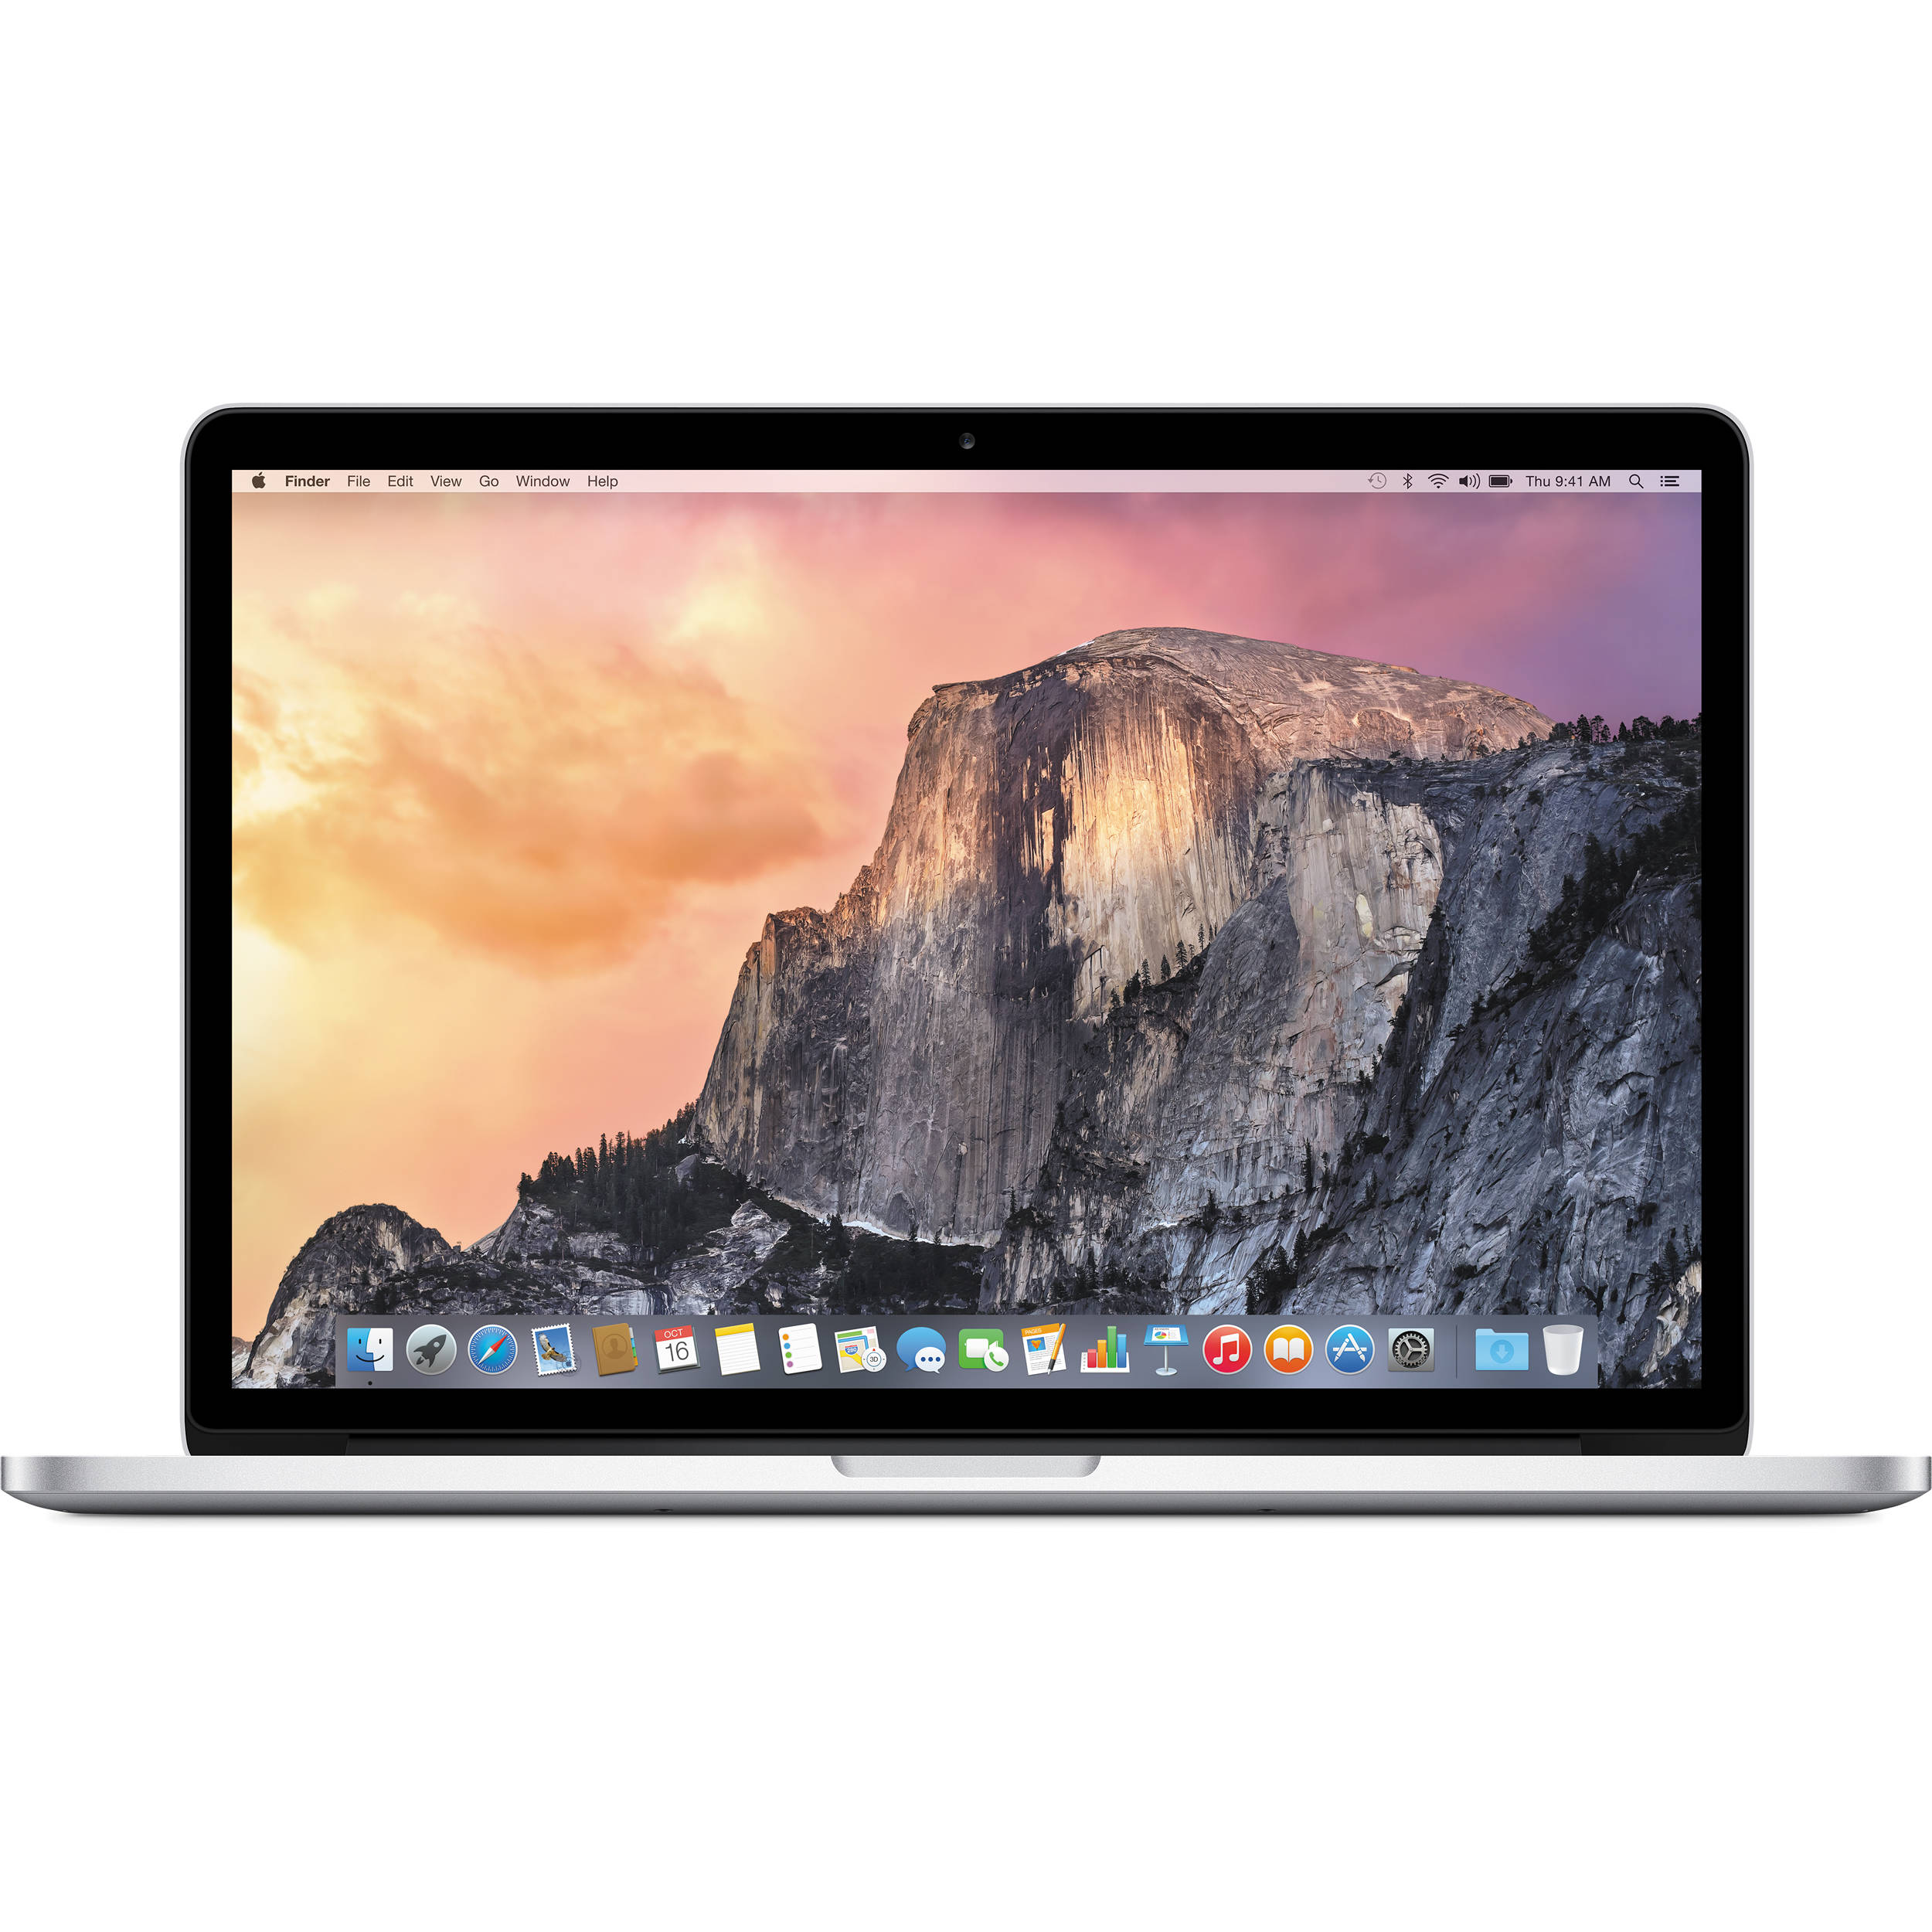 Apple 154 Macbook Pro Laptop Computer Z0rf Mjlq25 Bh 115 Projects Diy Circuit Board Falsh Toy Integrated Electronic With Retina Display Force Touch Trackpad Mid